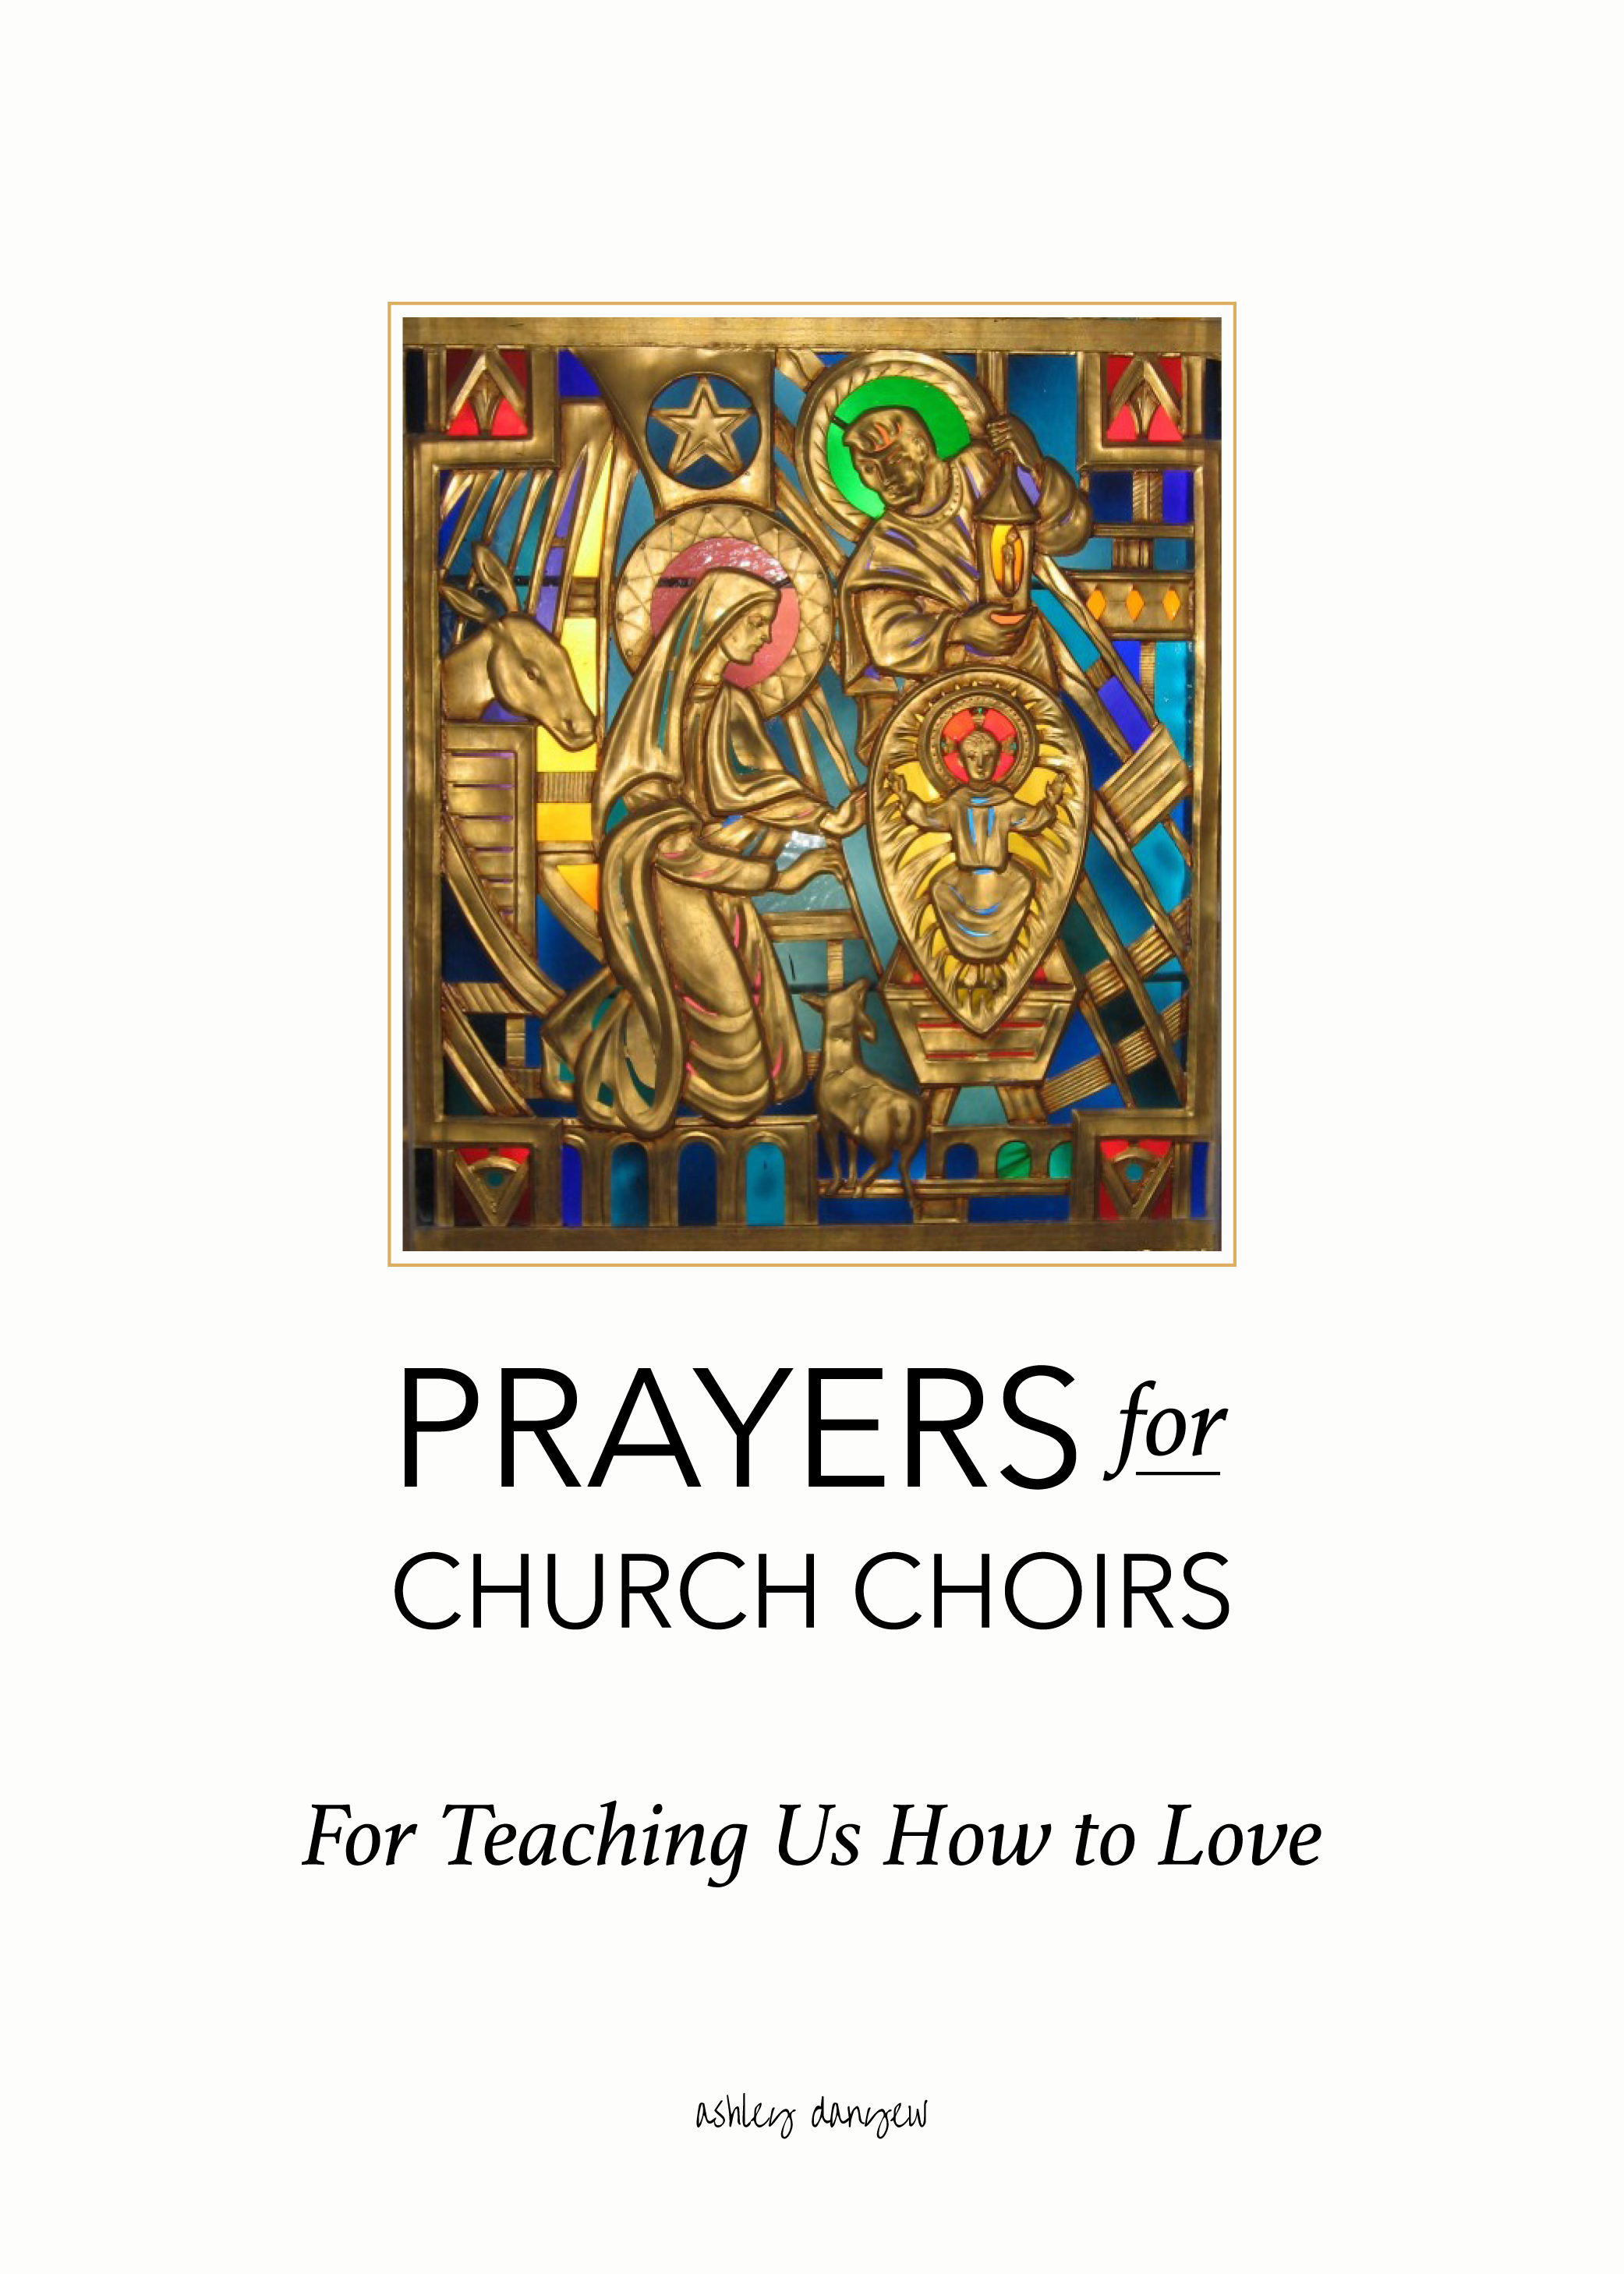 Prayers-for-Church-Choirs_Love-01.png